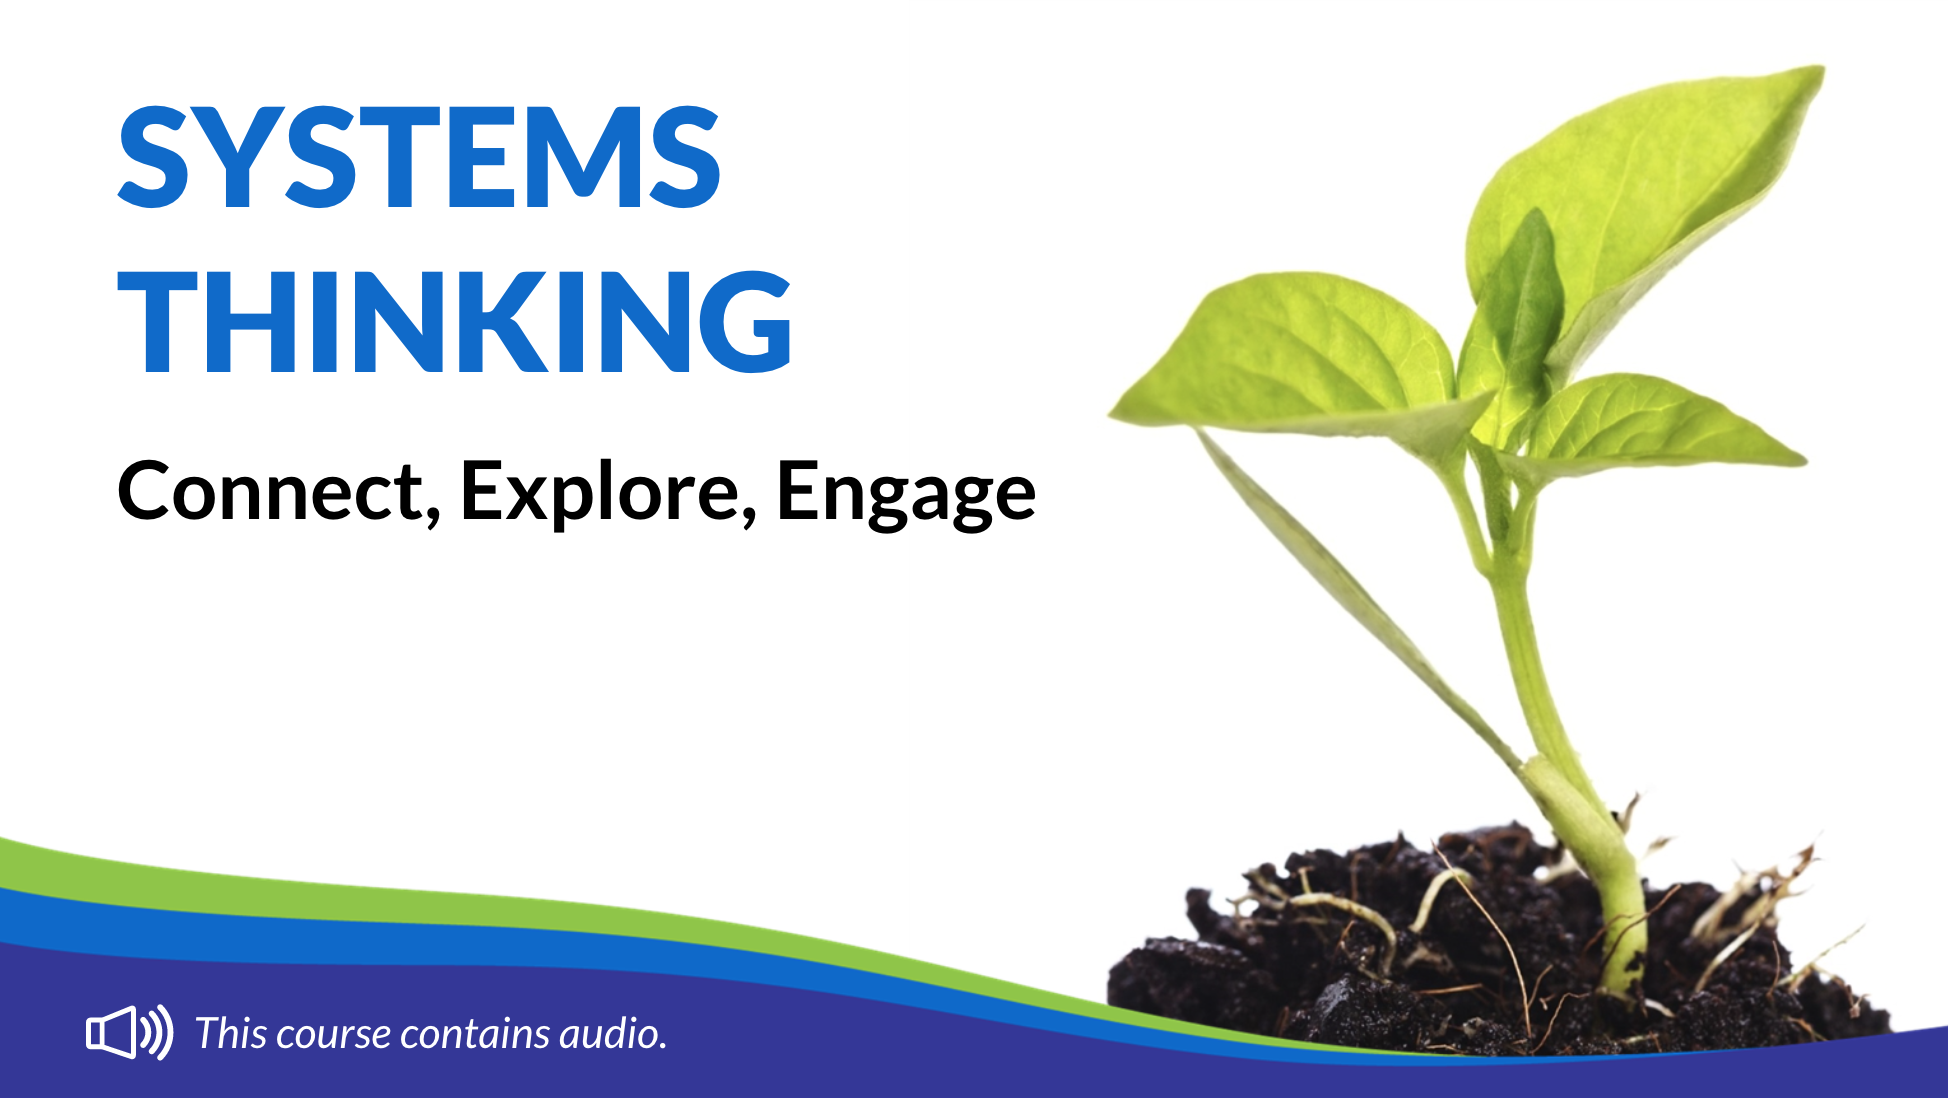 Connect, Explore, Engage with Systems Thinking